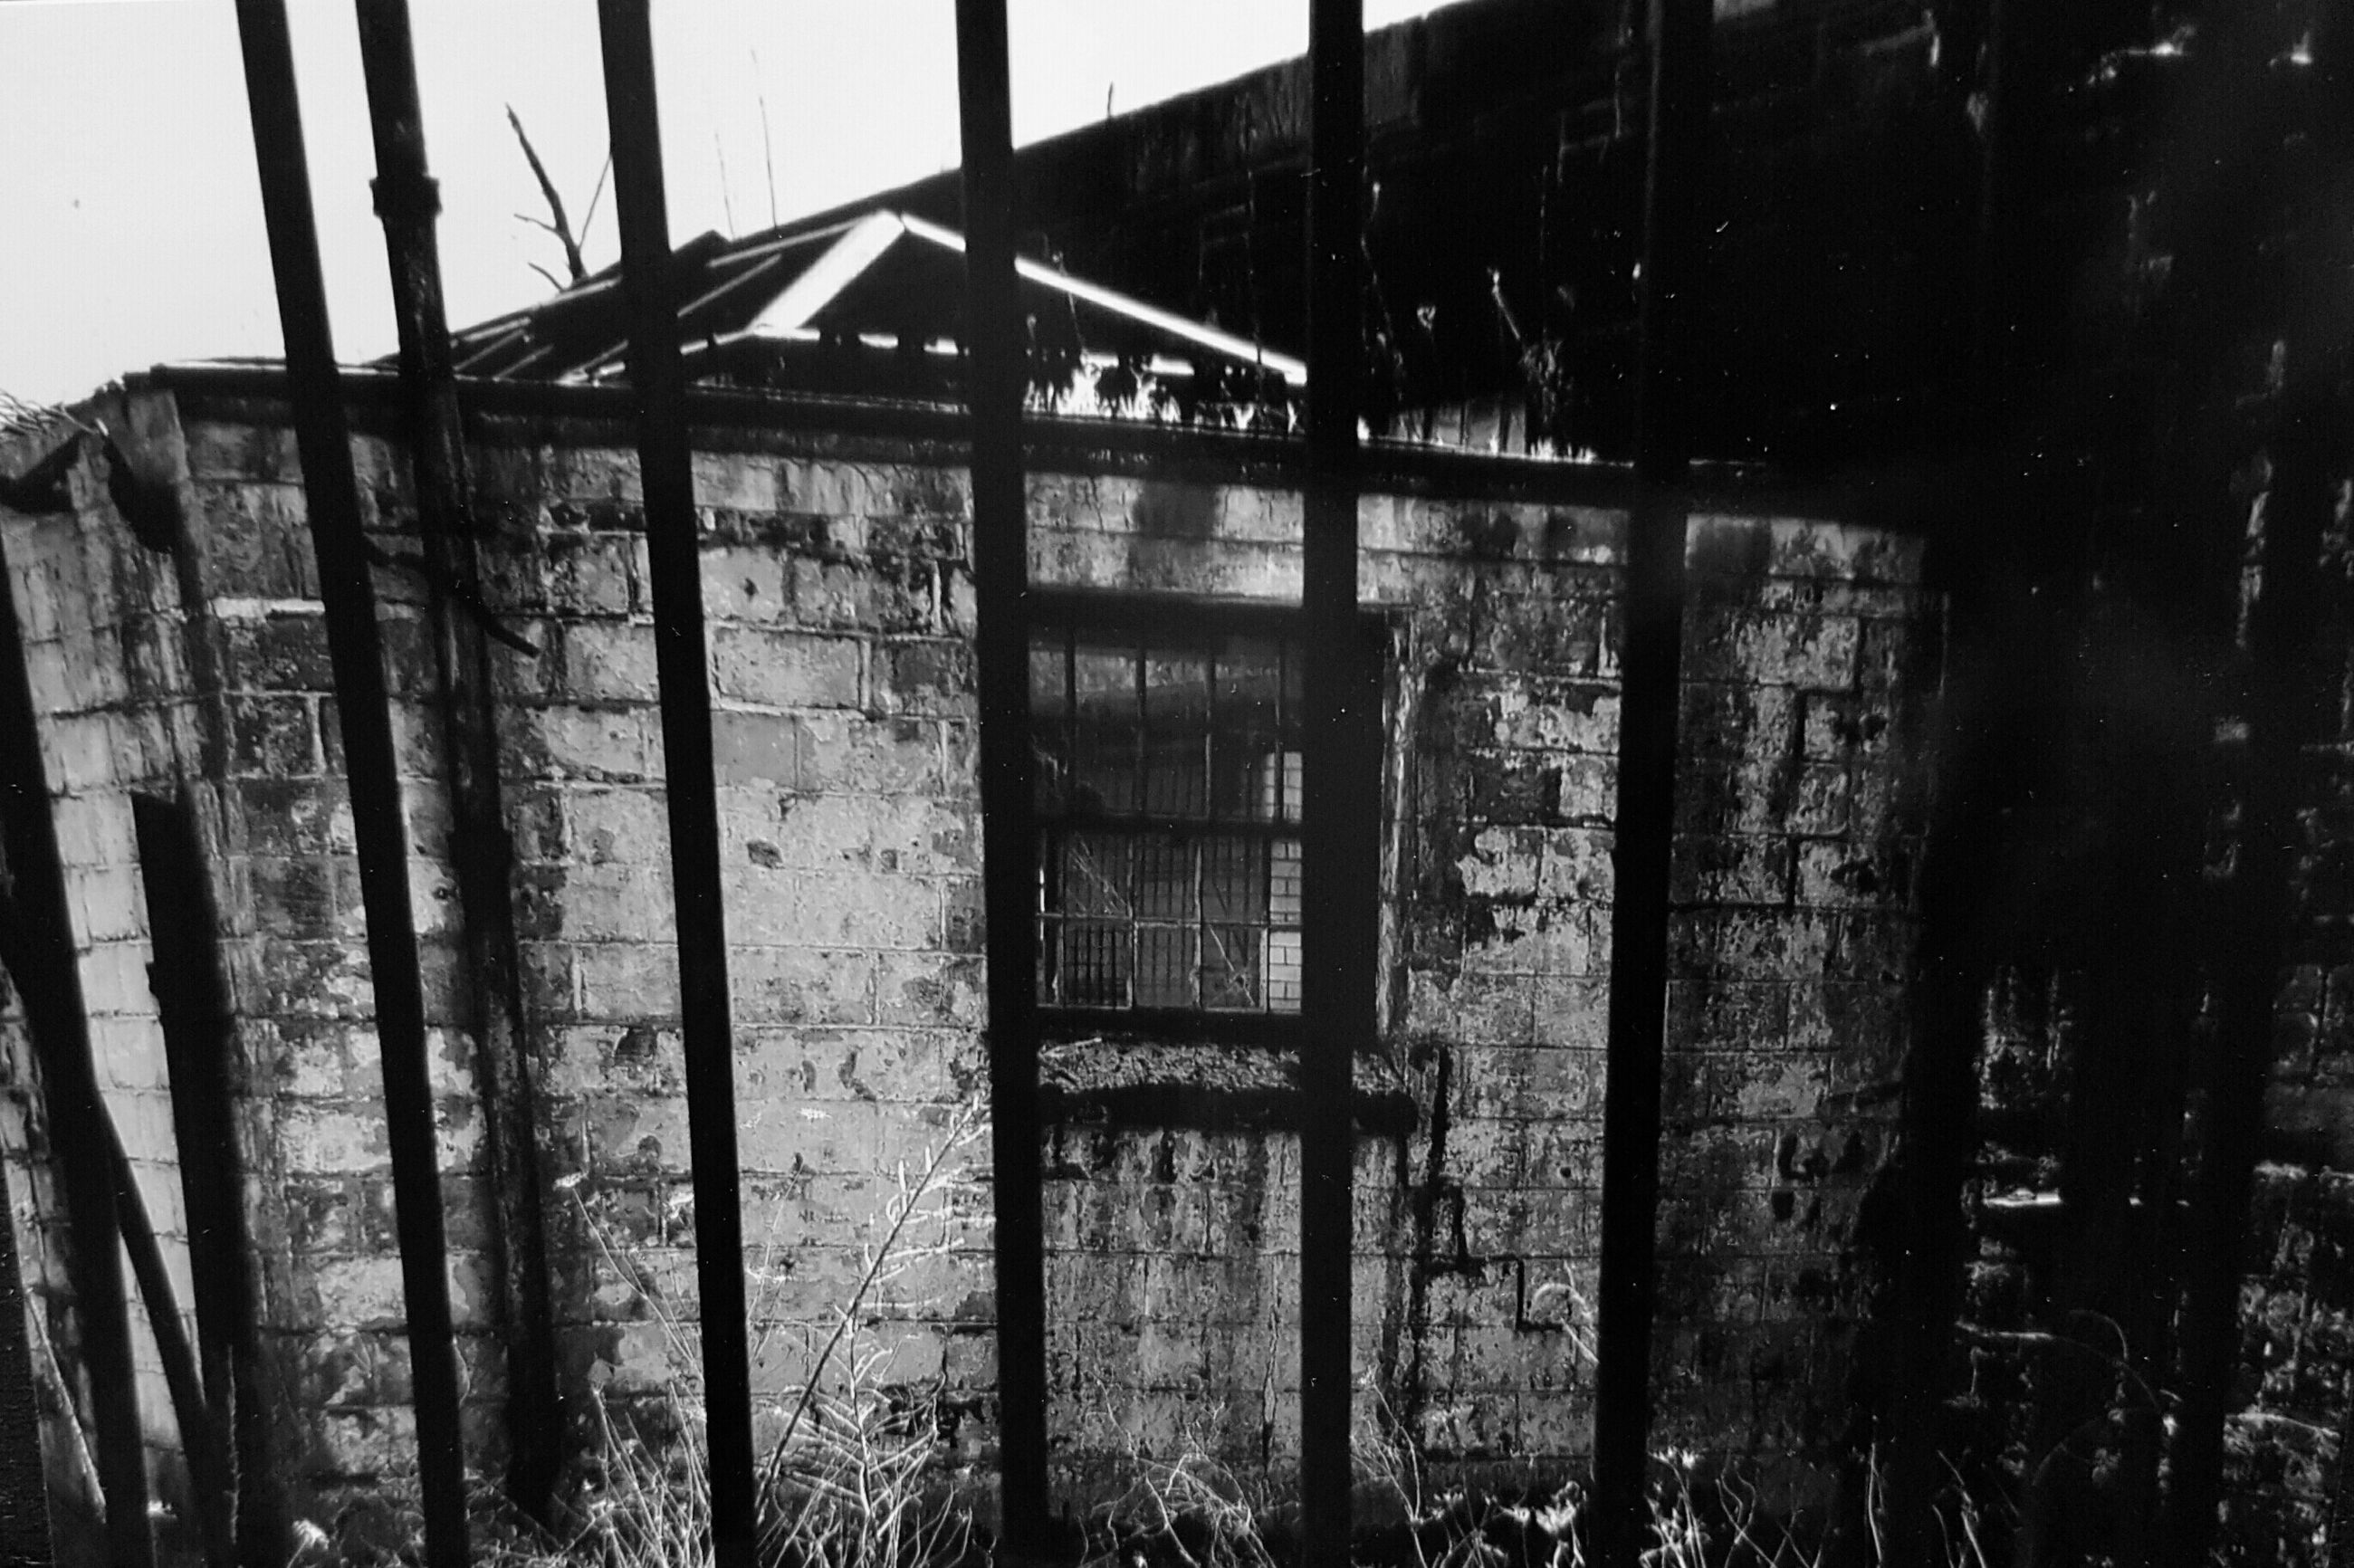 abandoned, built structure, architecture, obsolete, damaged, run-down, deterioration, old, weathered, building exterior, window, bad condition, house, metal, rusty, destruction, broken, wall - building feature, wood - material, low angle view